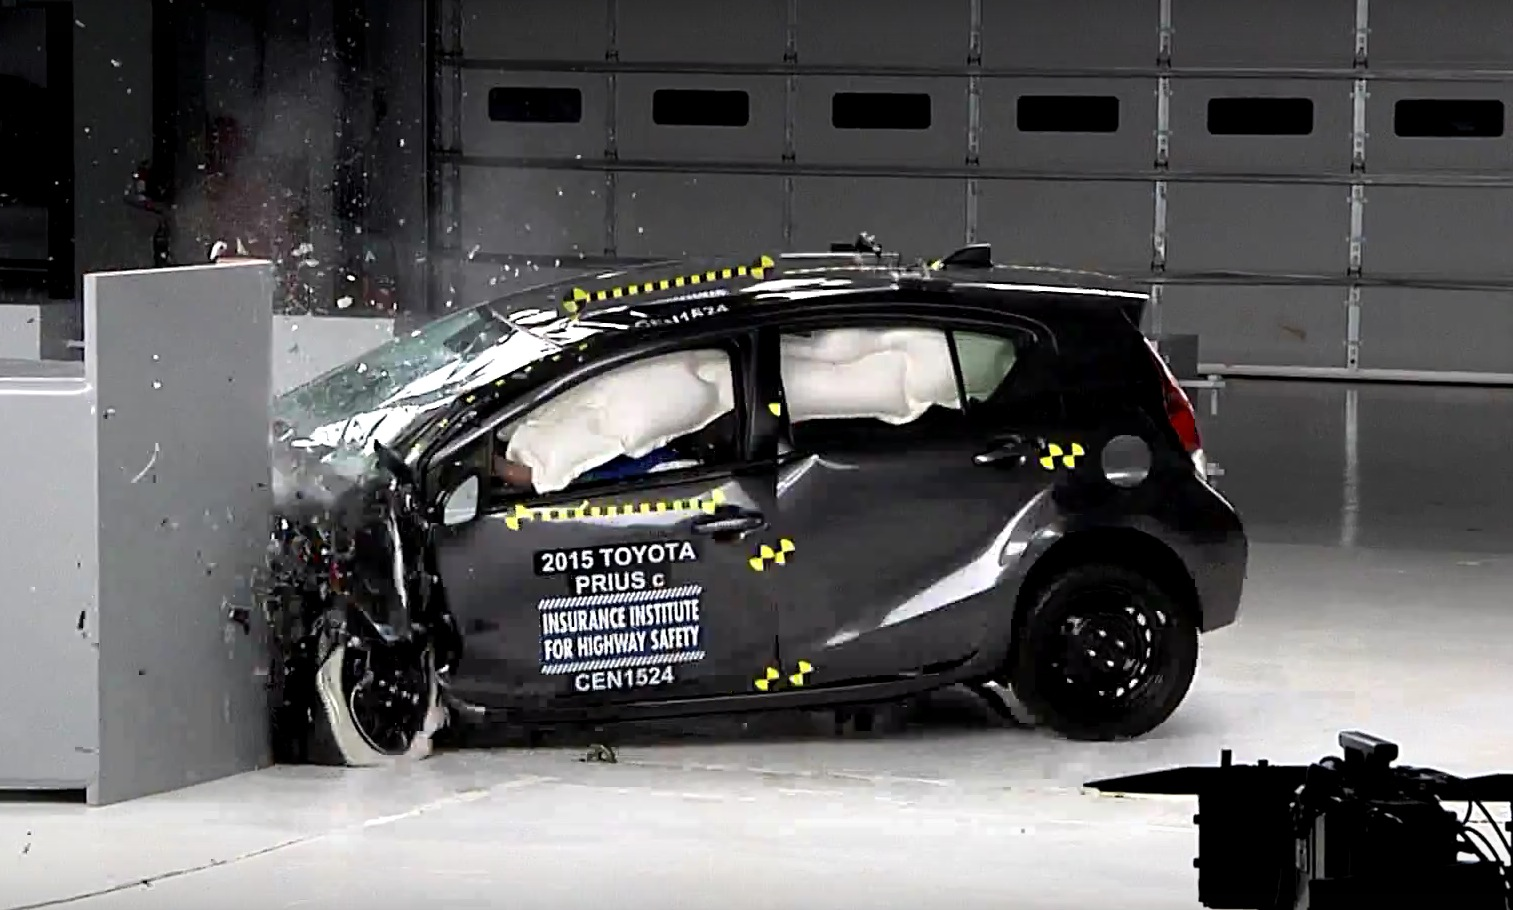 2015 toyota prius c is only acceptably safe iihs small overlap crash test shows autoevolution. Black Bedroom Furniture Sets. Home Design Ideas